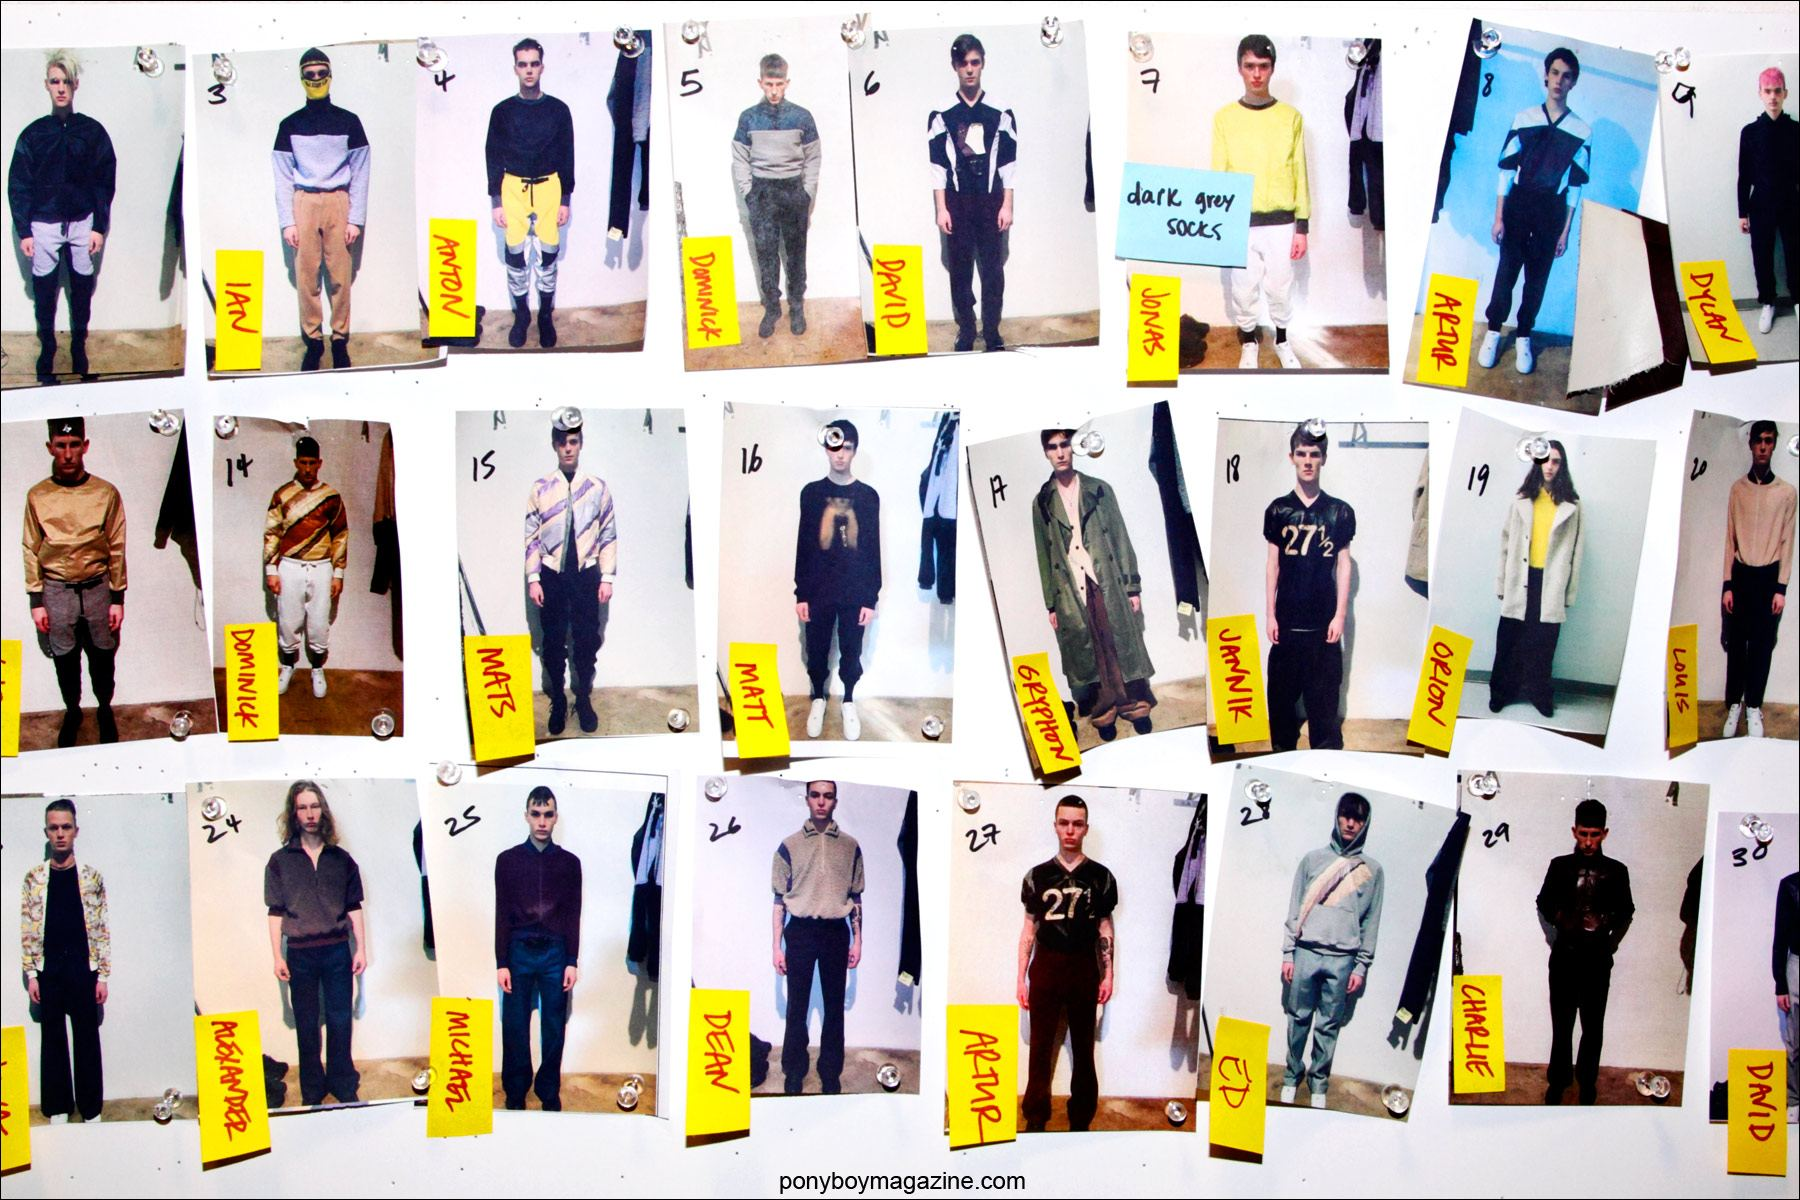 Assorted photographs of male models, backstage at New York menswear designer Martin Keehn's F/W15 collection at Pier 59 Studios NY. Photograph by Alexander Thompson for Ponyboy magazine.